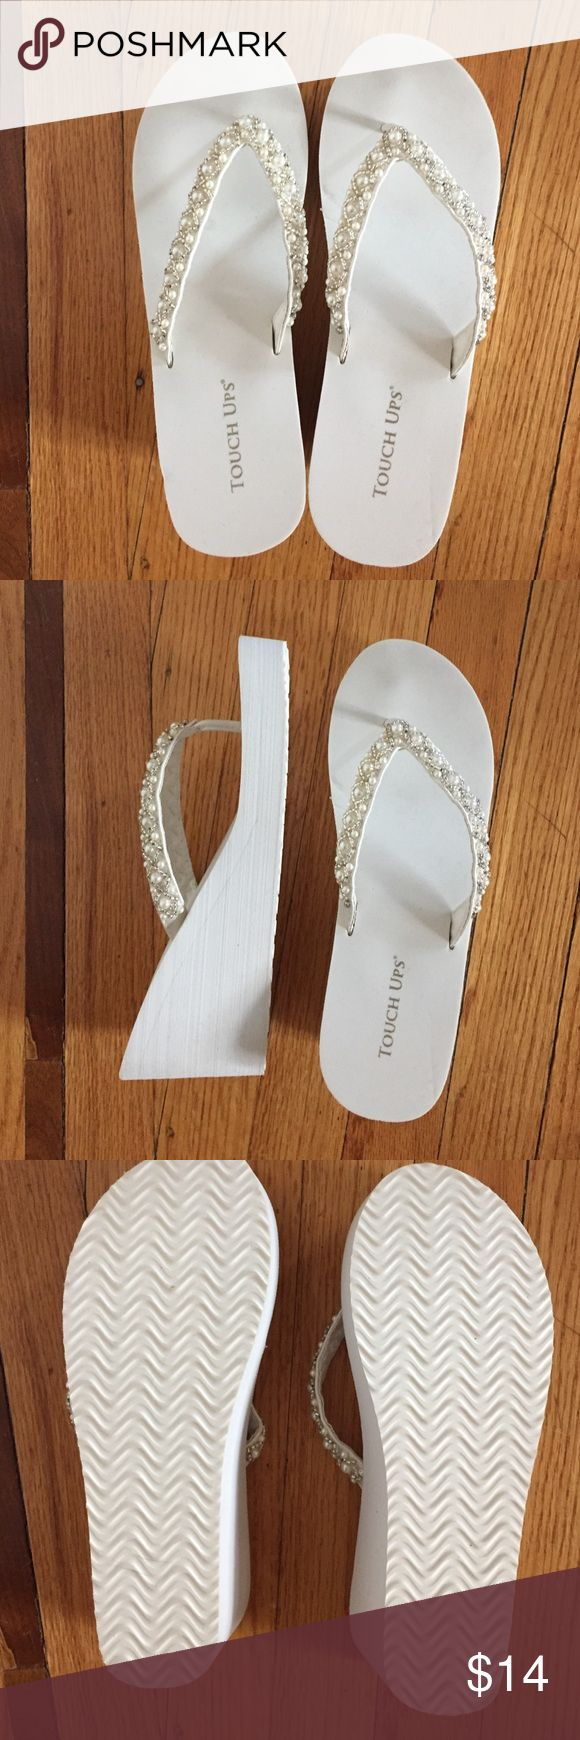 Bridal White Wedge Flip Flops Used for literally ten minutes at my own wedding and will never use again! Super comfy, clean! Touch Ups Shoes Sandals